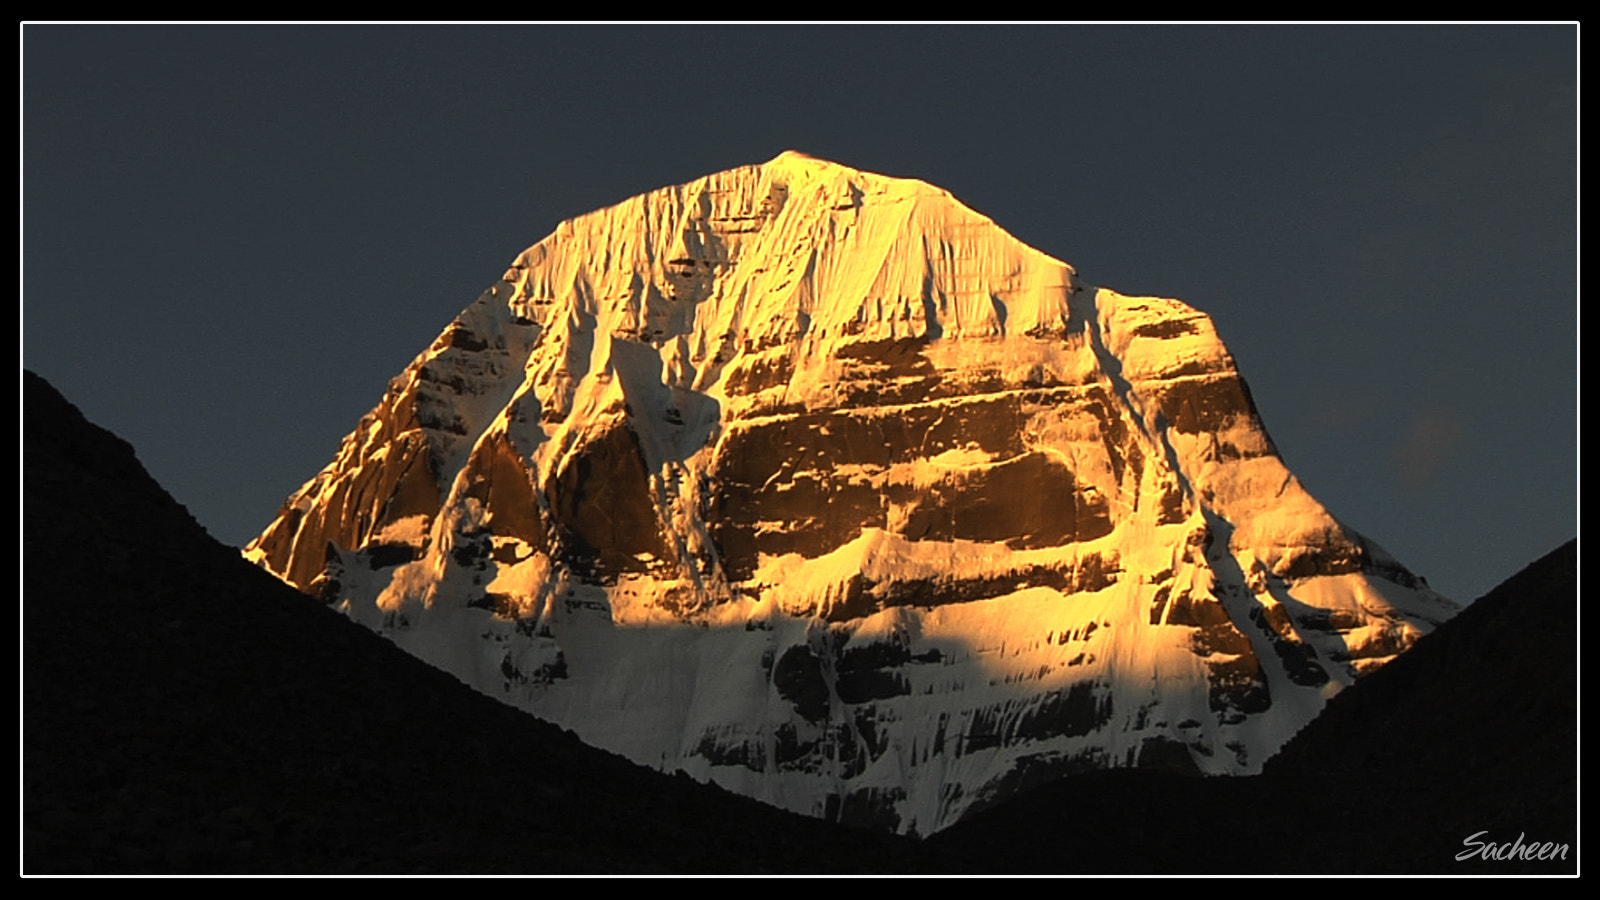 Photograph Mount Kailash by Sacheen Vaidya on 500px